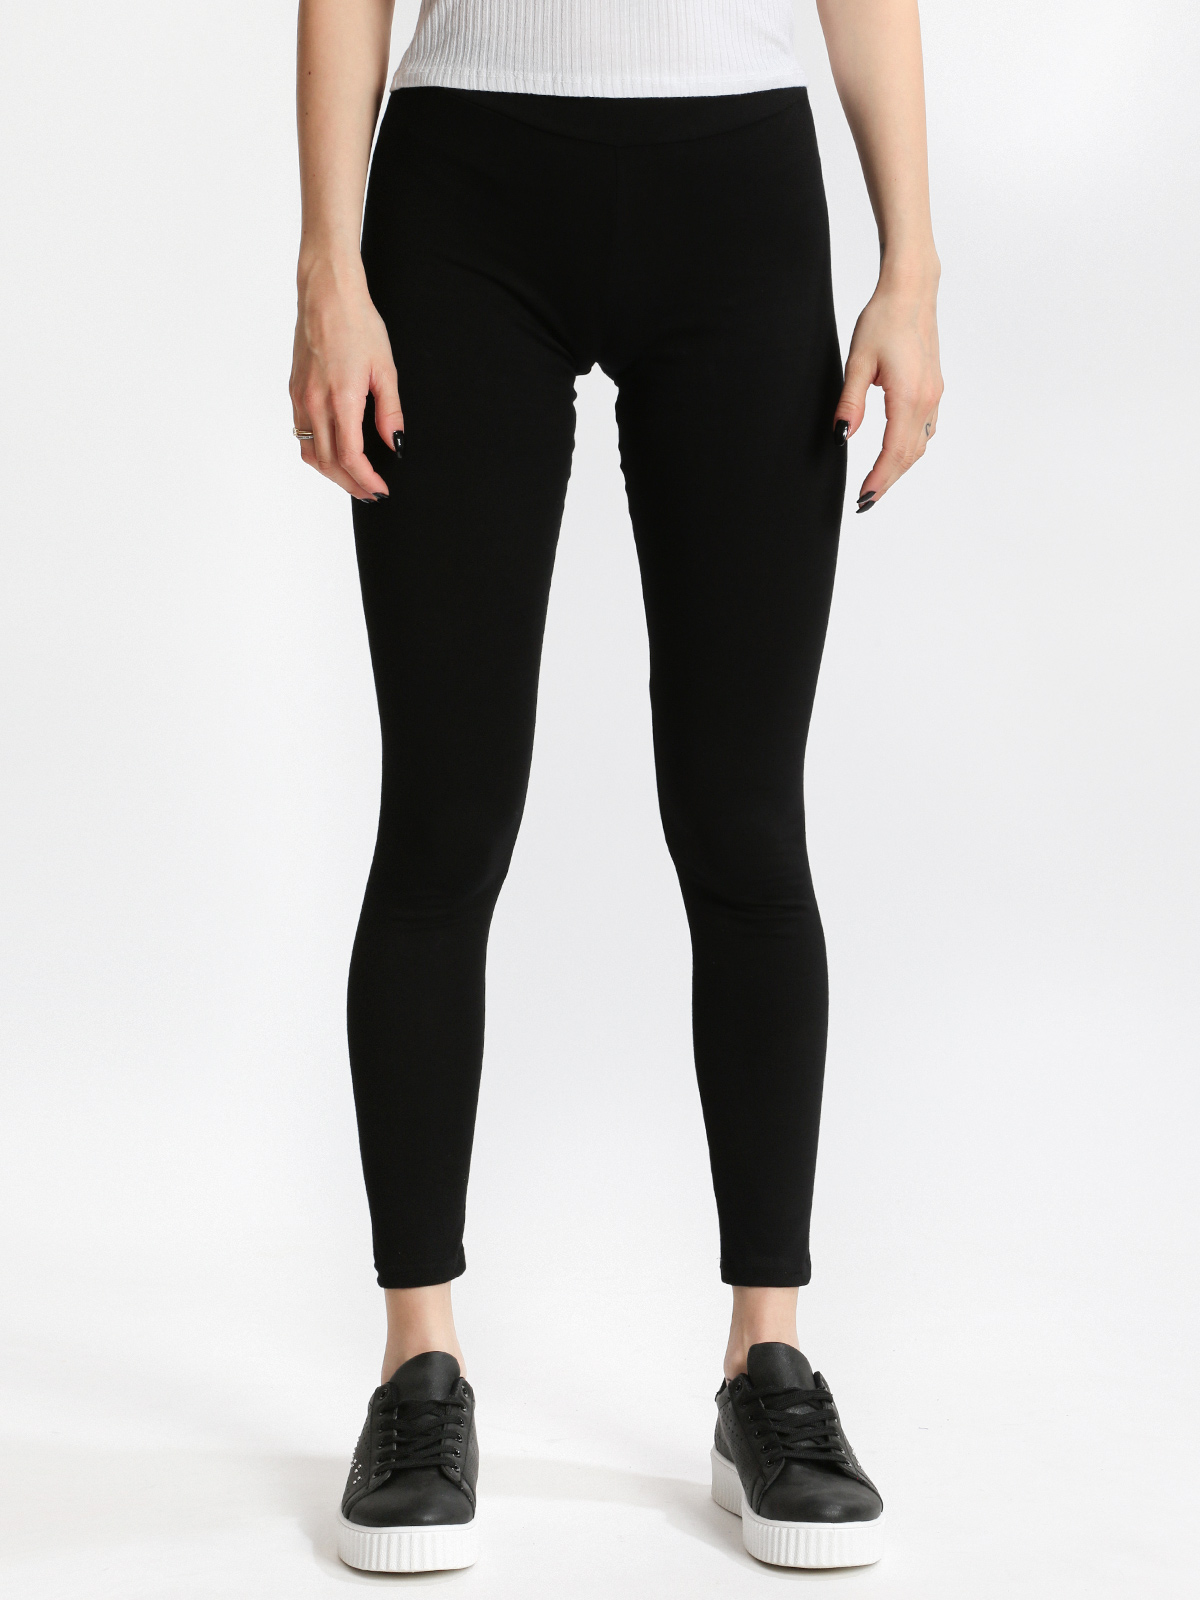 Black Leggings Cotton